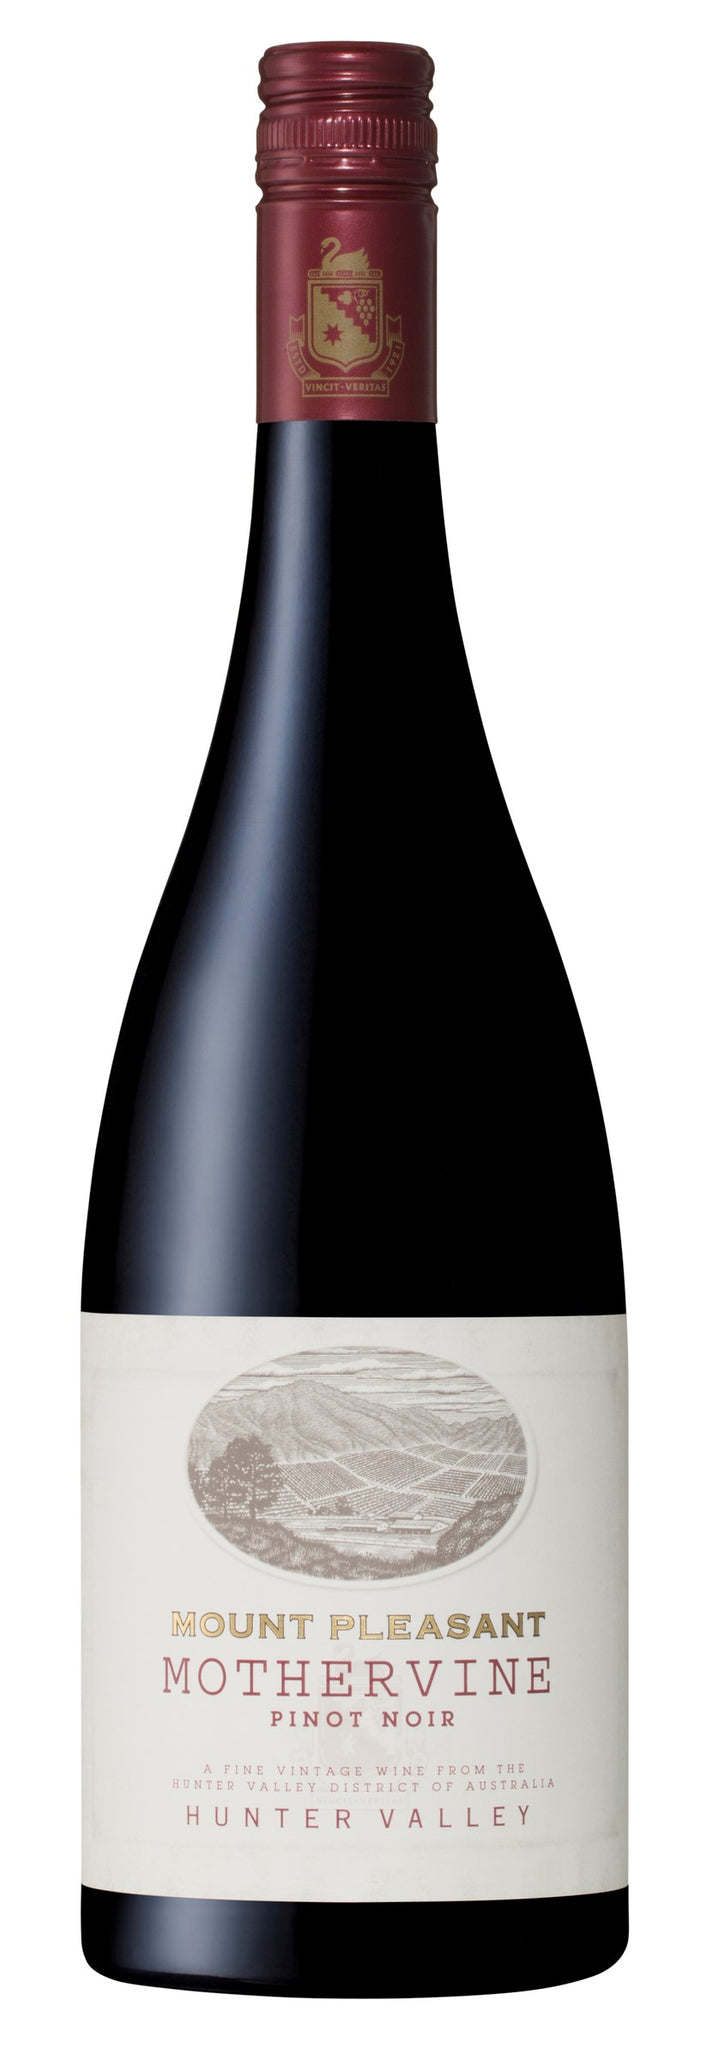 2016 Mothervine Pinot Noir